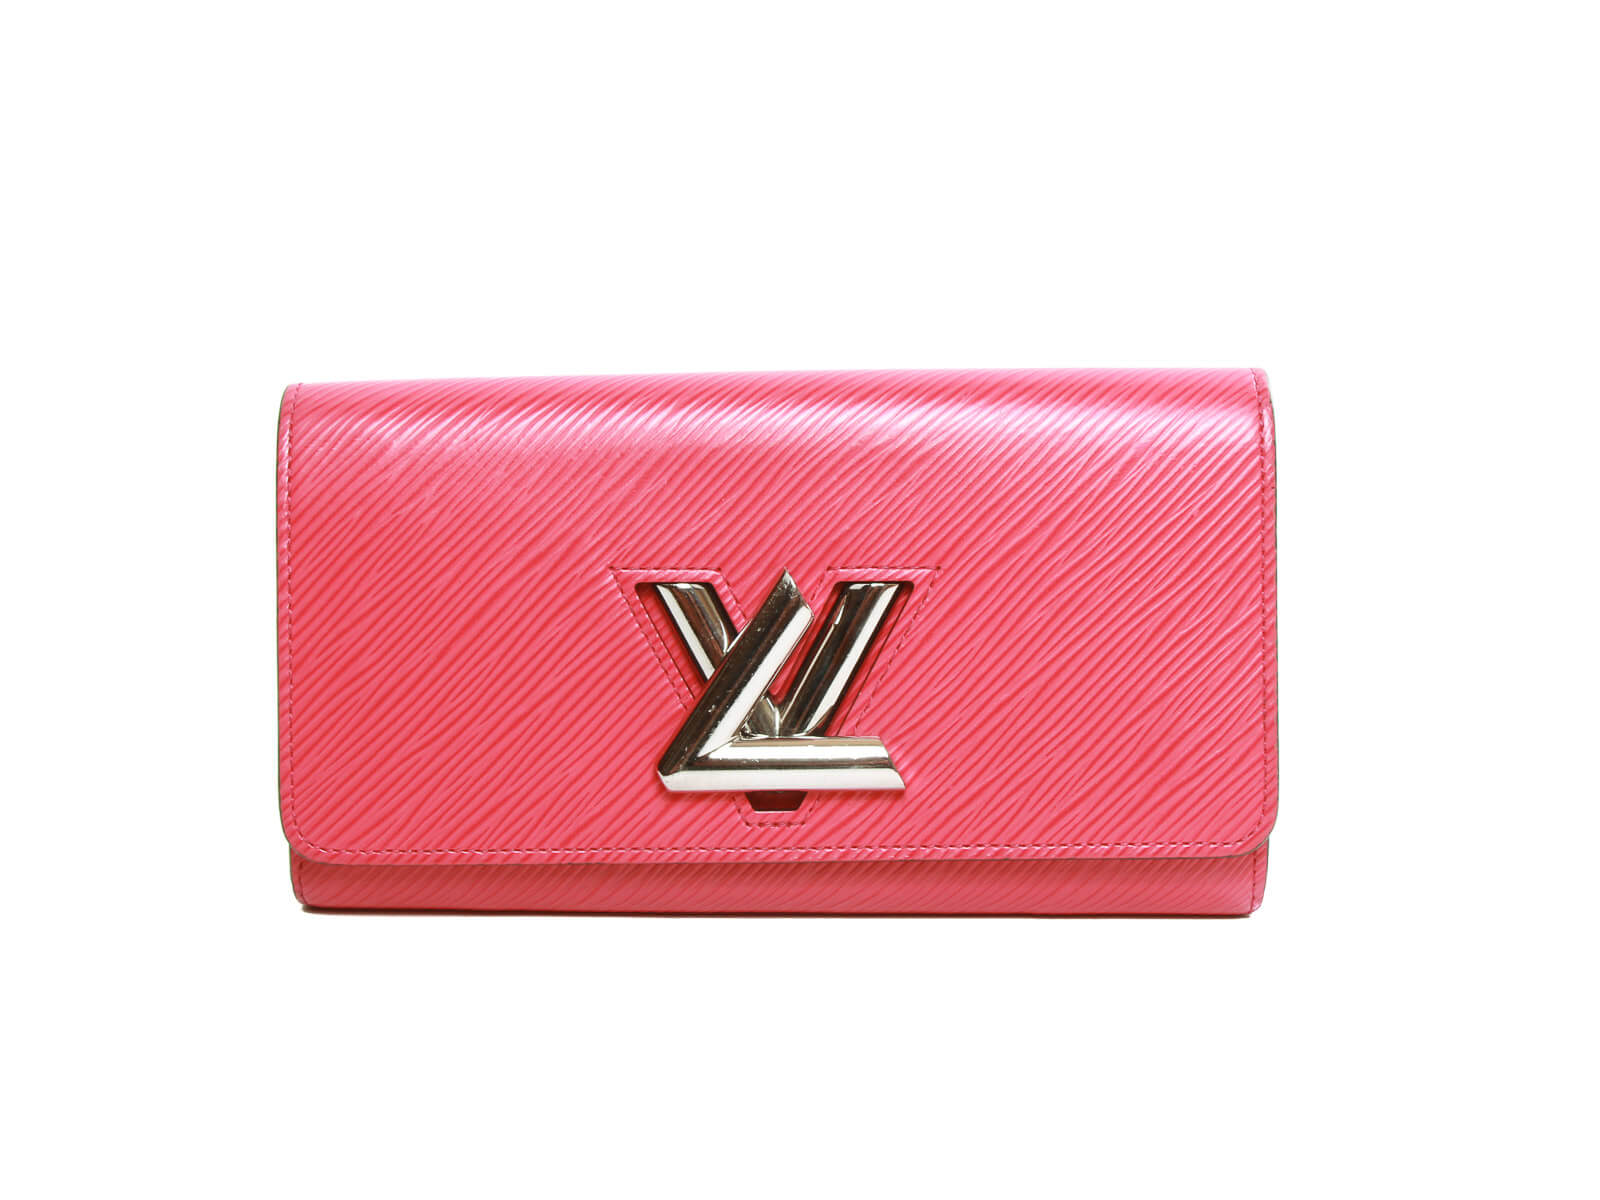 Authentic Louis Vuitton Portefeuille twist Wallet pink